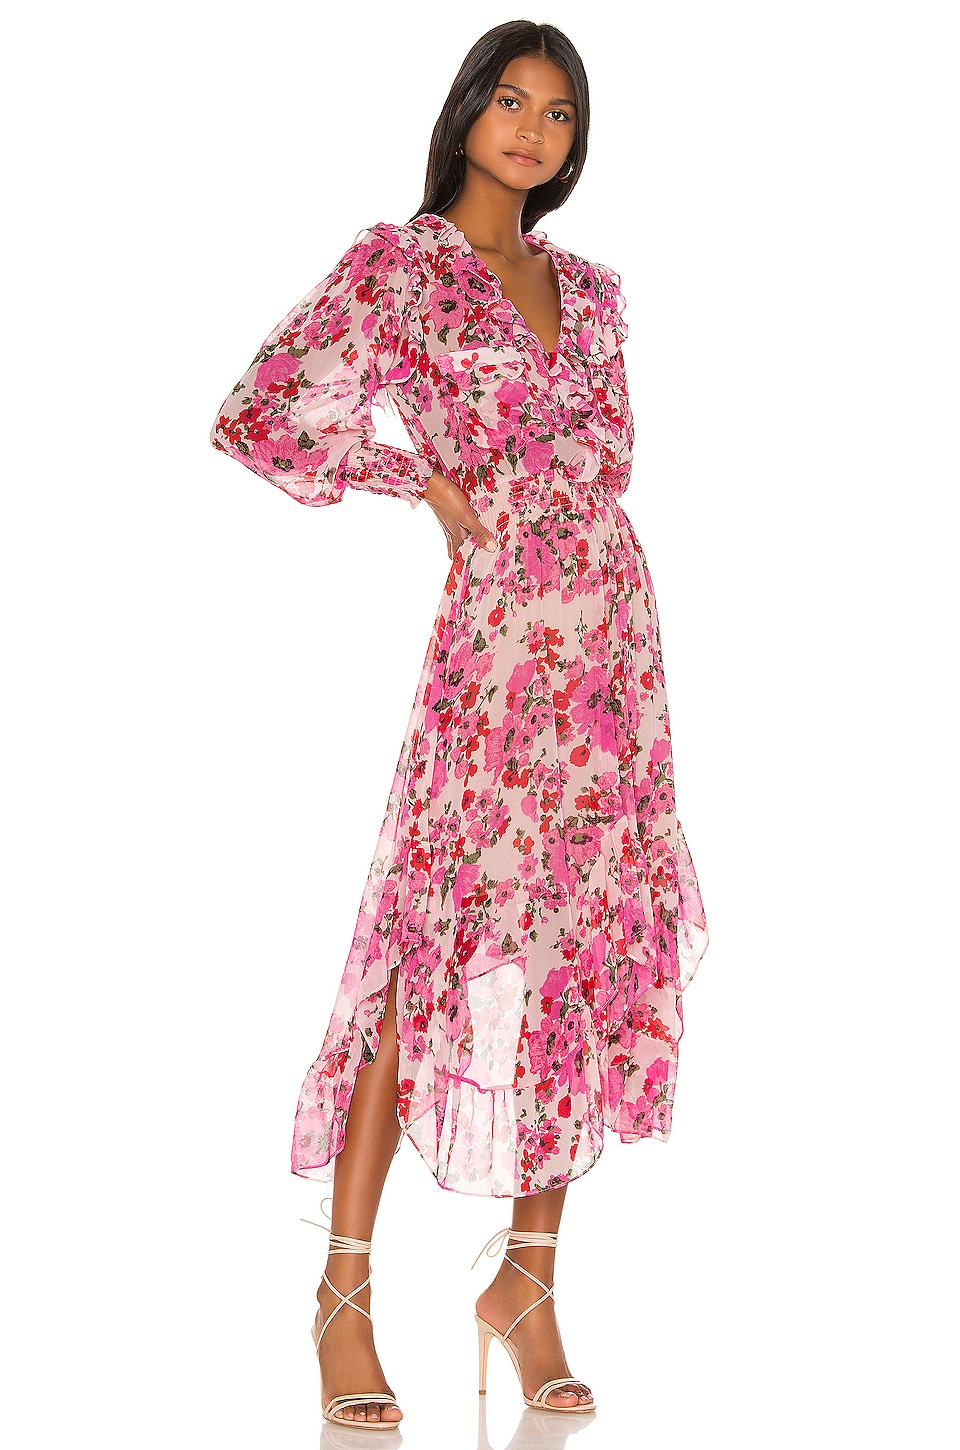 MISA Los Angeles Samantha Dress in Pink Floral